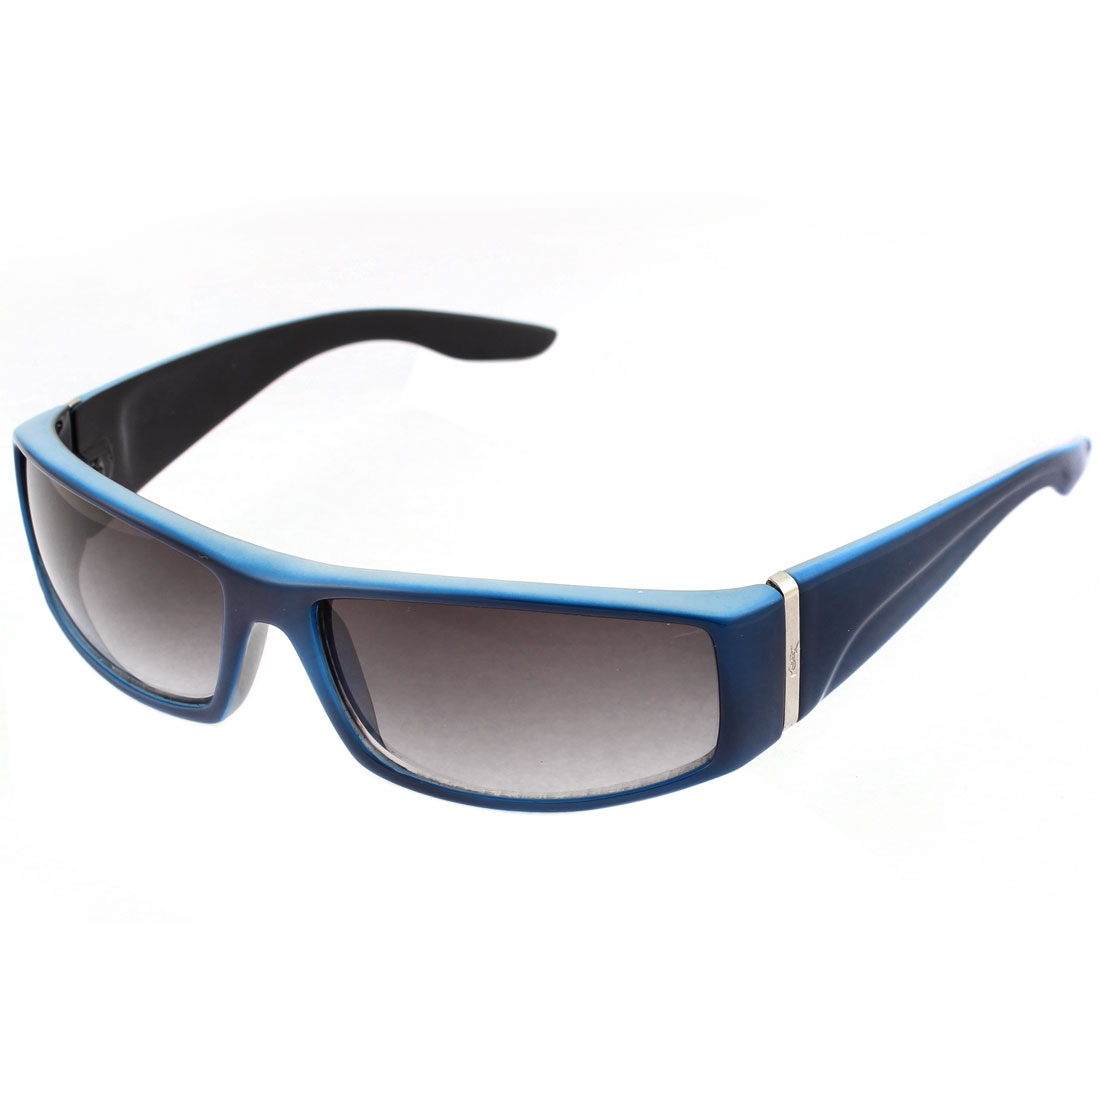 Black Blue Full Frame Single Bridge Sunglasses for Women Men